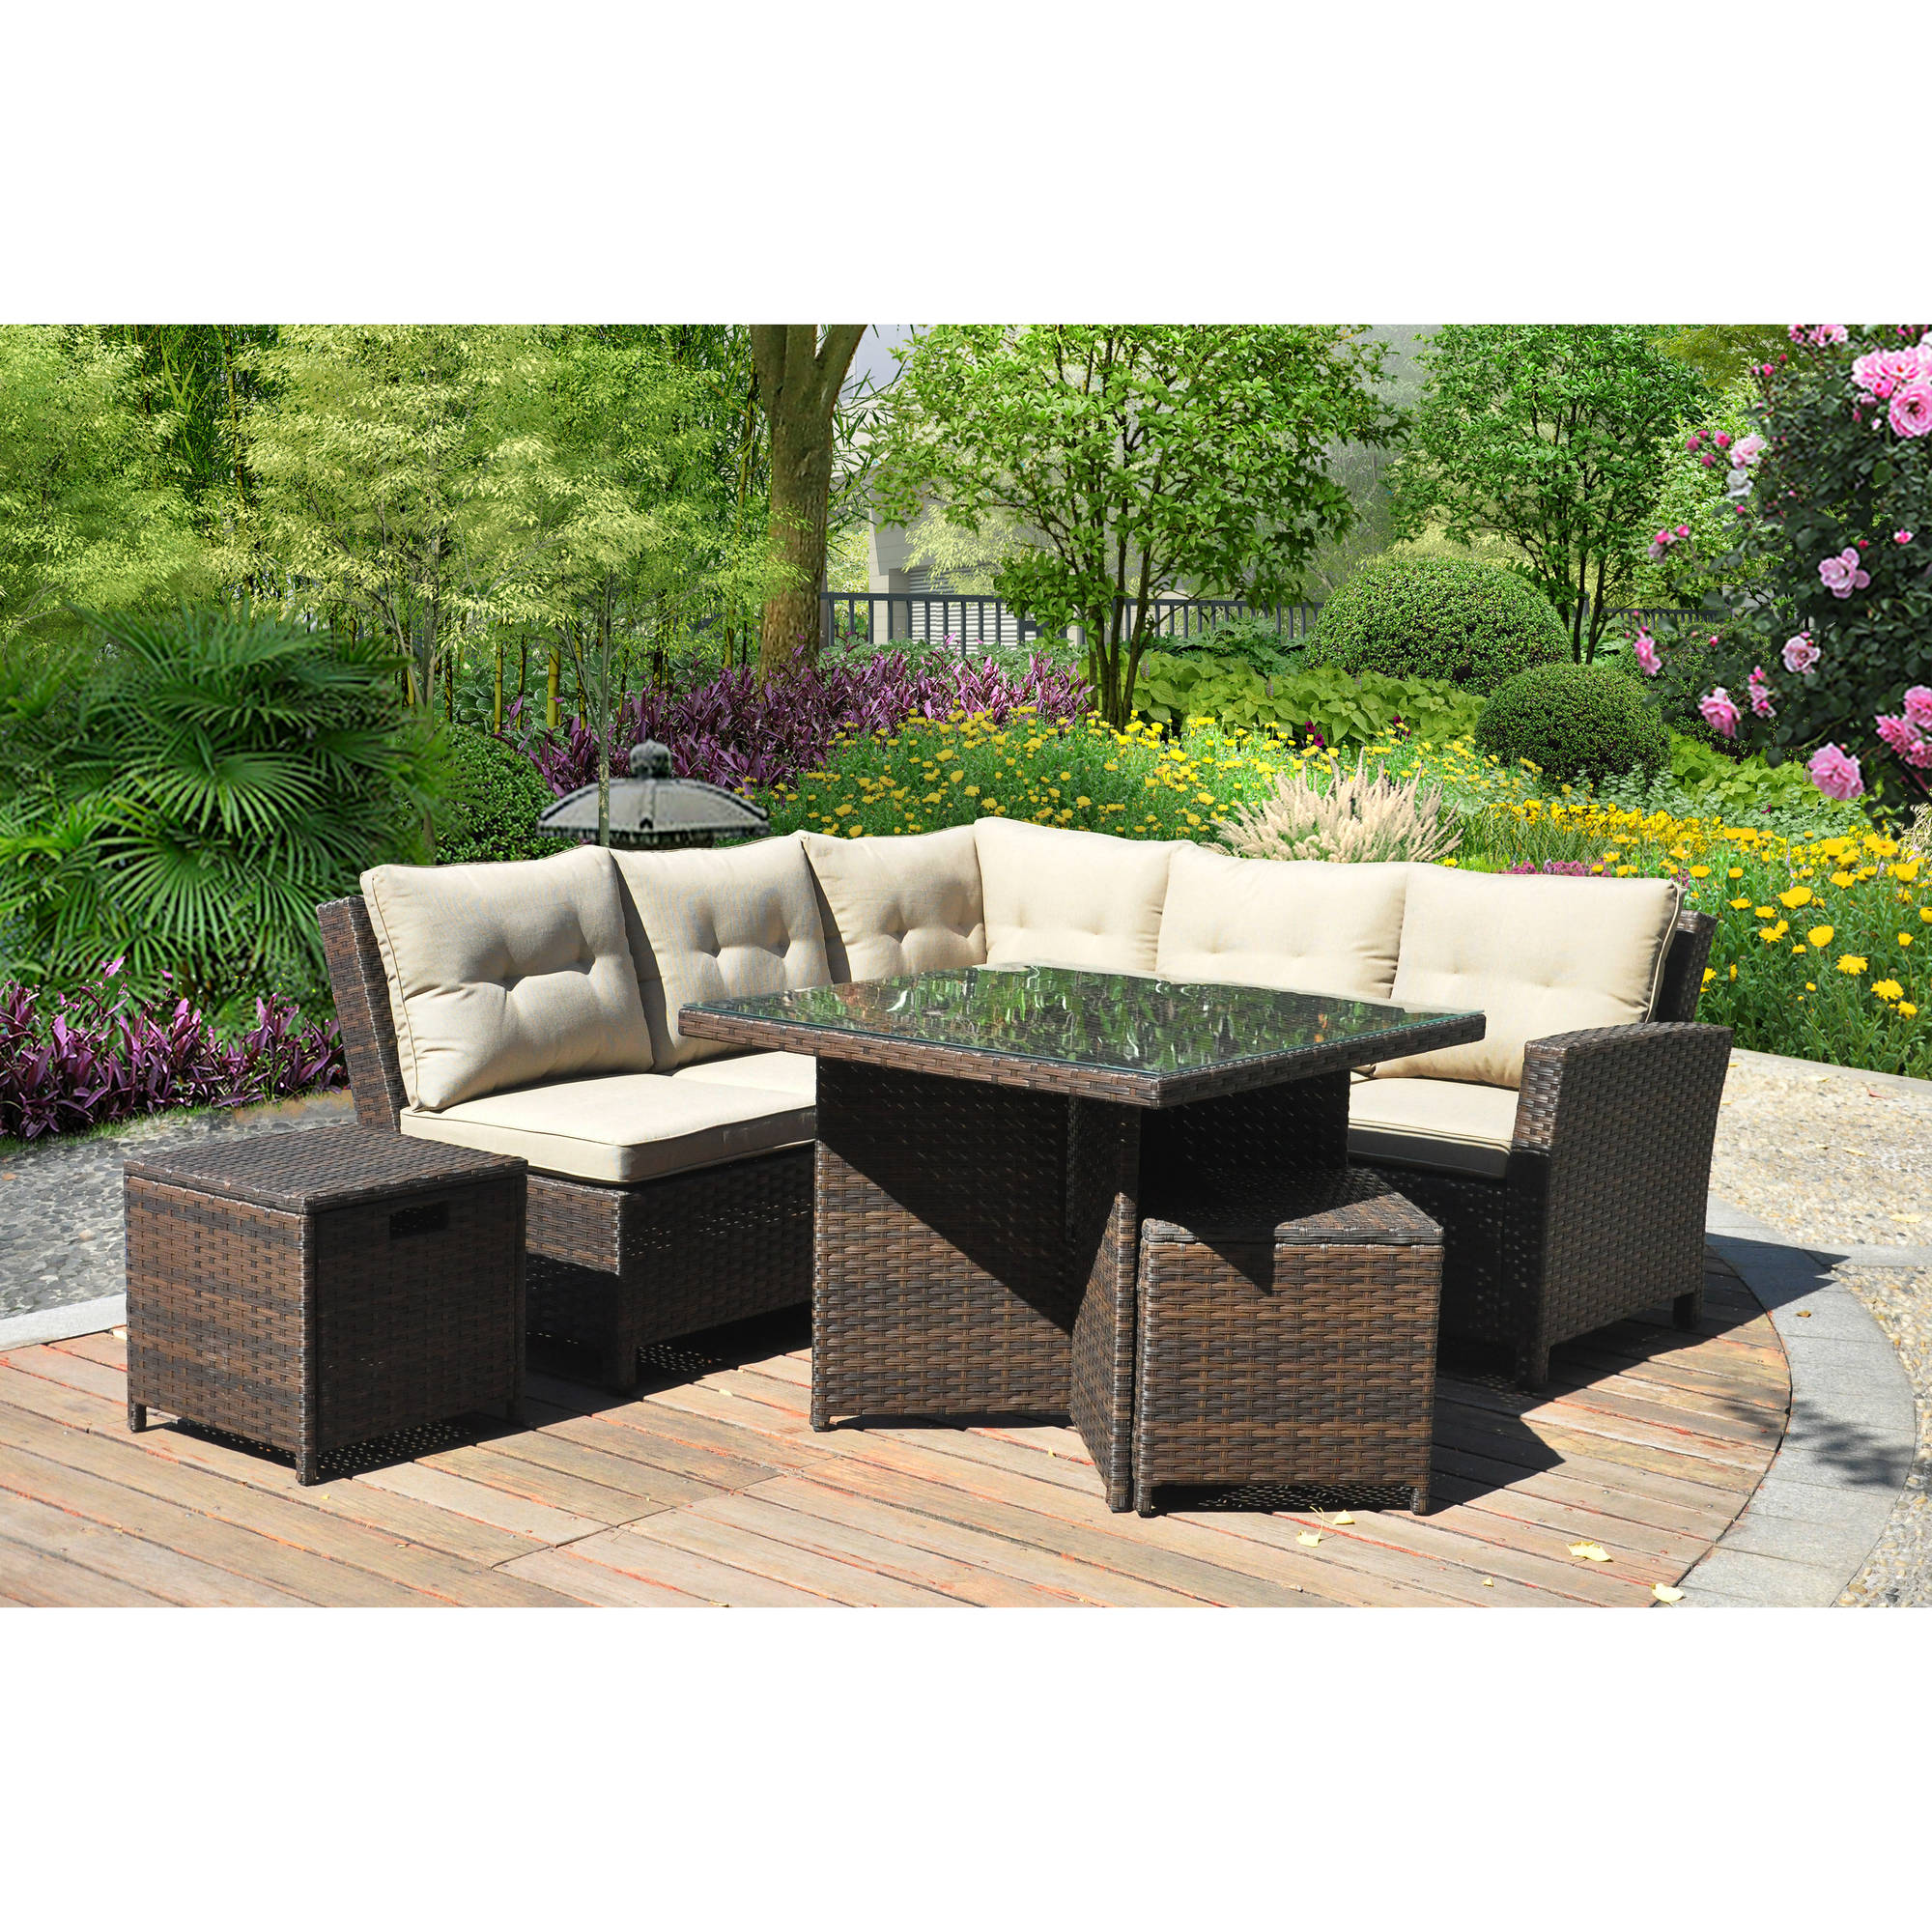 Awesome Mainstays Ragan Meadow II 7 Piece Outdoor Sectional Sofa, Seats 5    Walmart.com